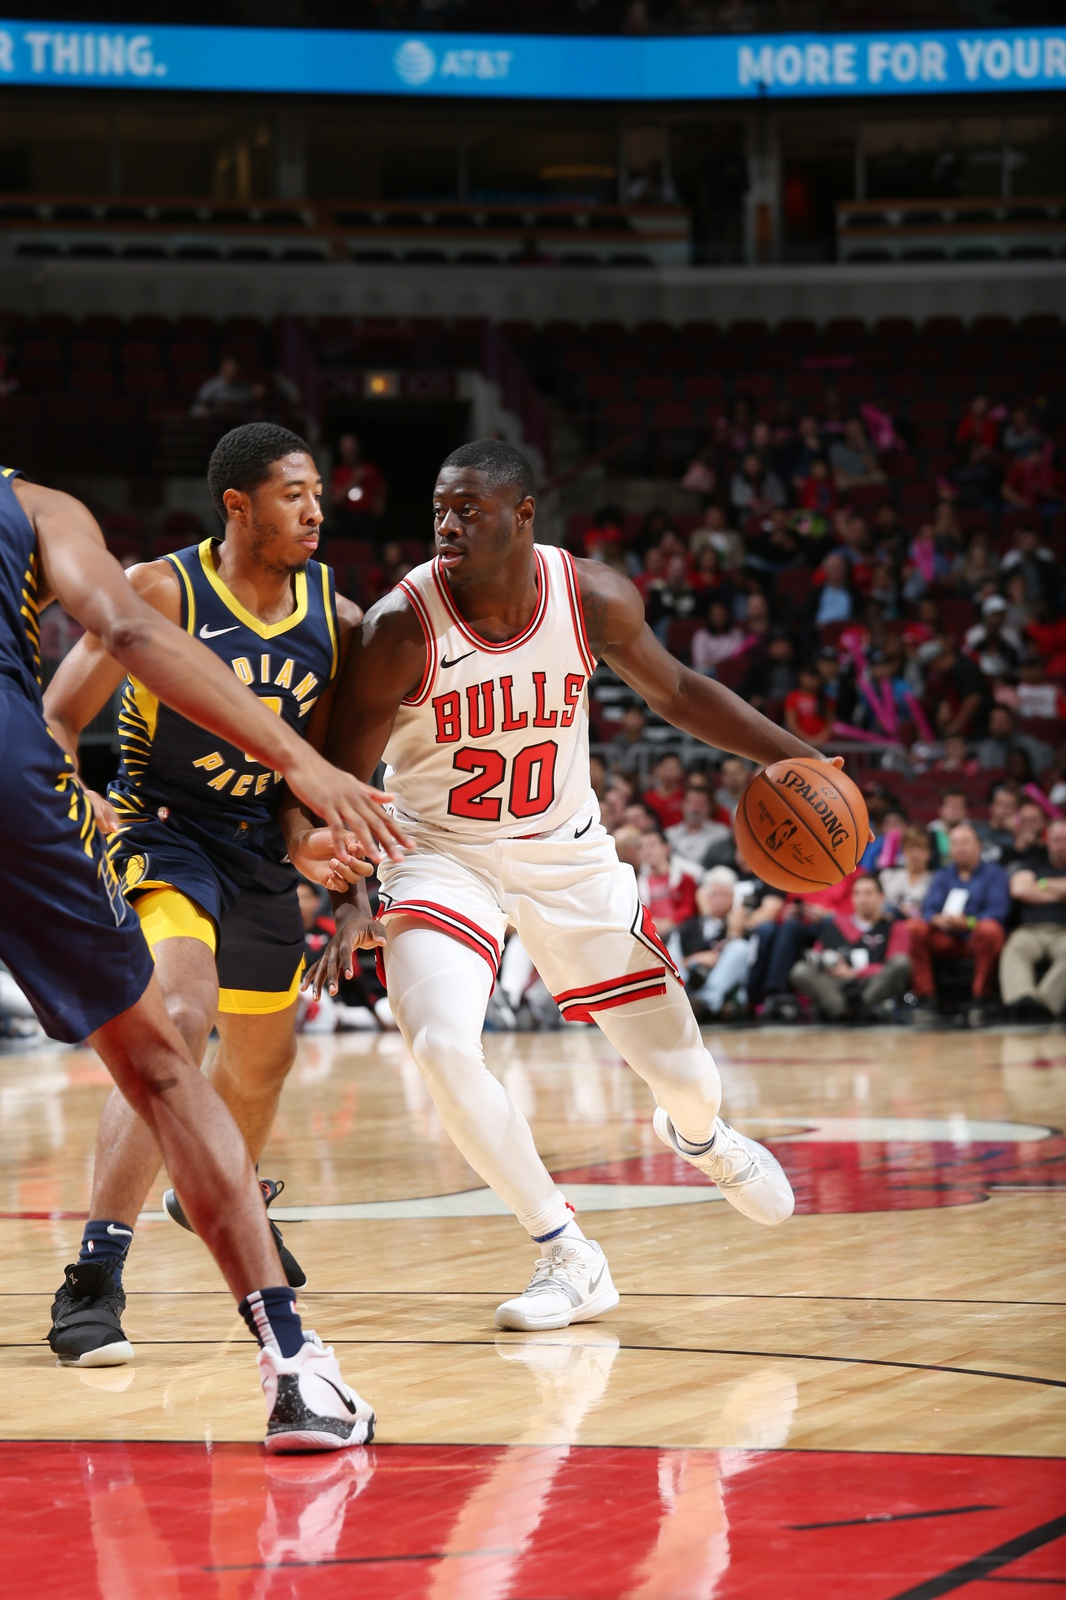 Rawle Alkins #20 of the Chicago Bulls handles the ball against the Indiana Pacers during a pre-season game on October 10, 2018 at the United Center in Chicago, Illinois.